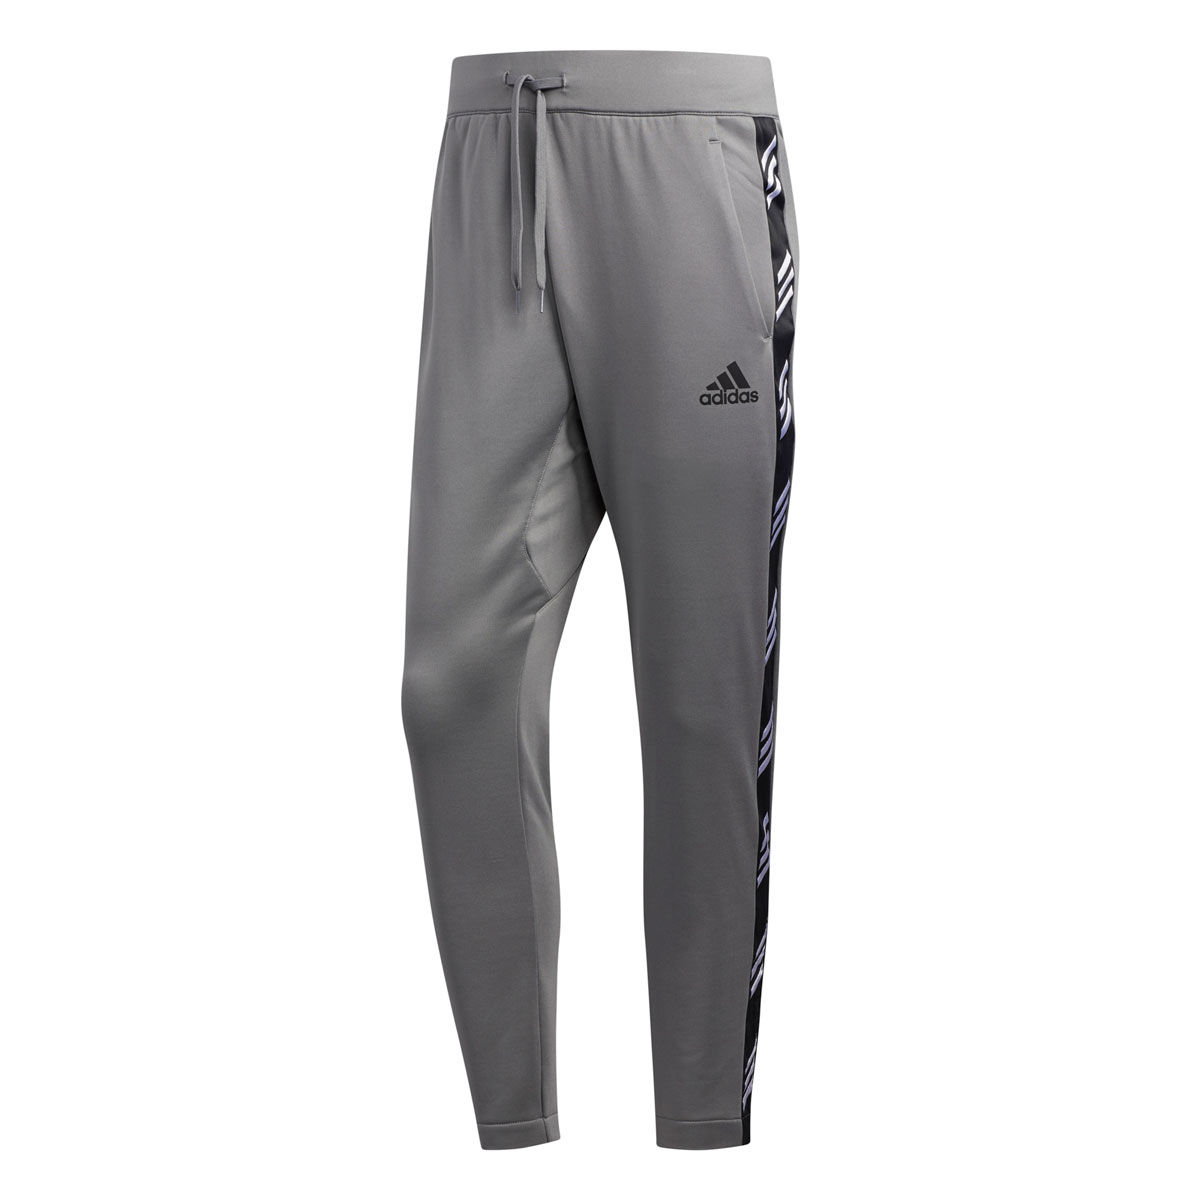 adidas Pro Madness Mens Basketball Pant